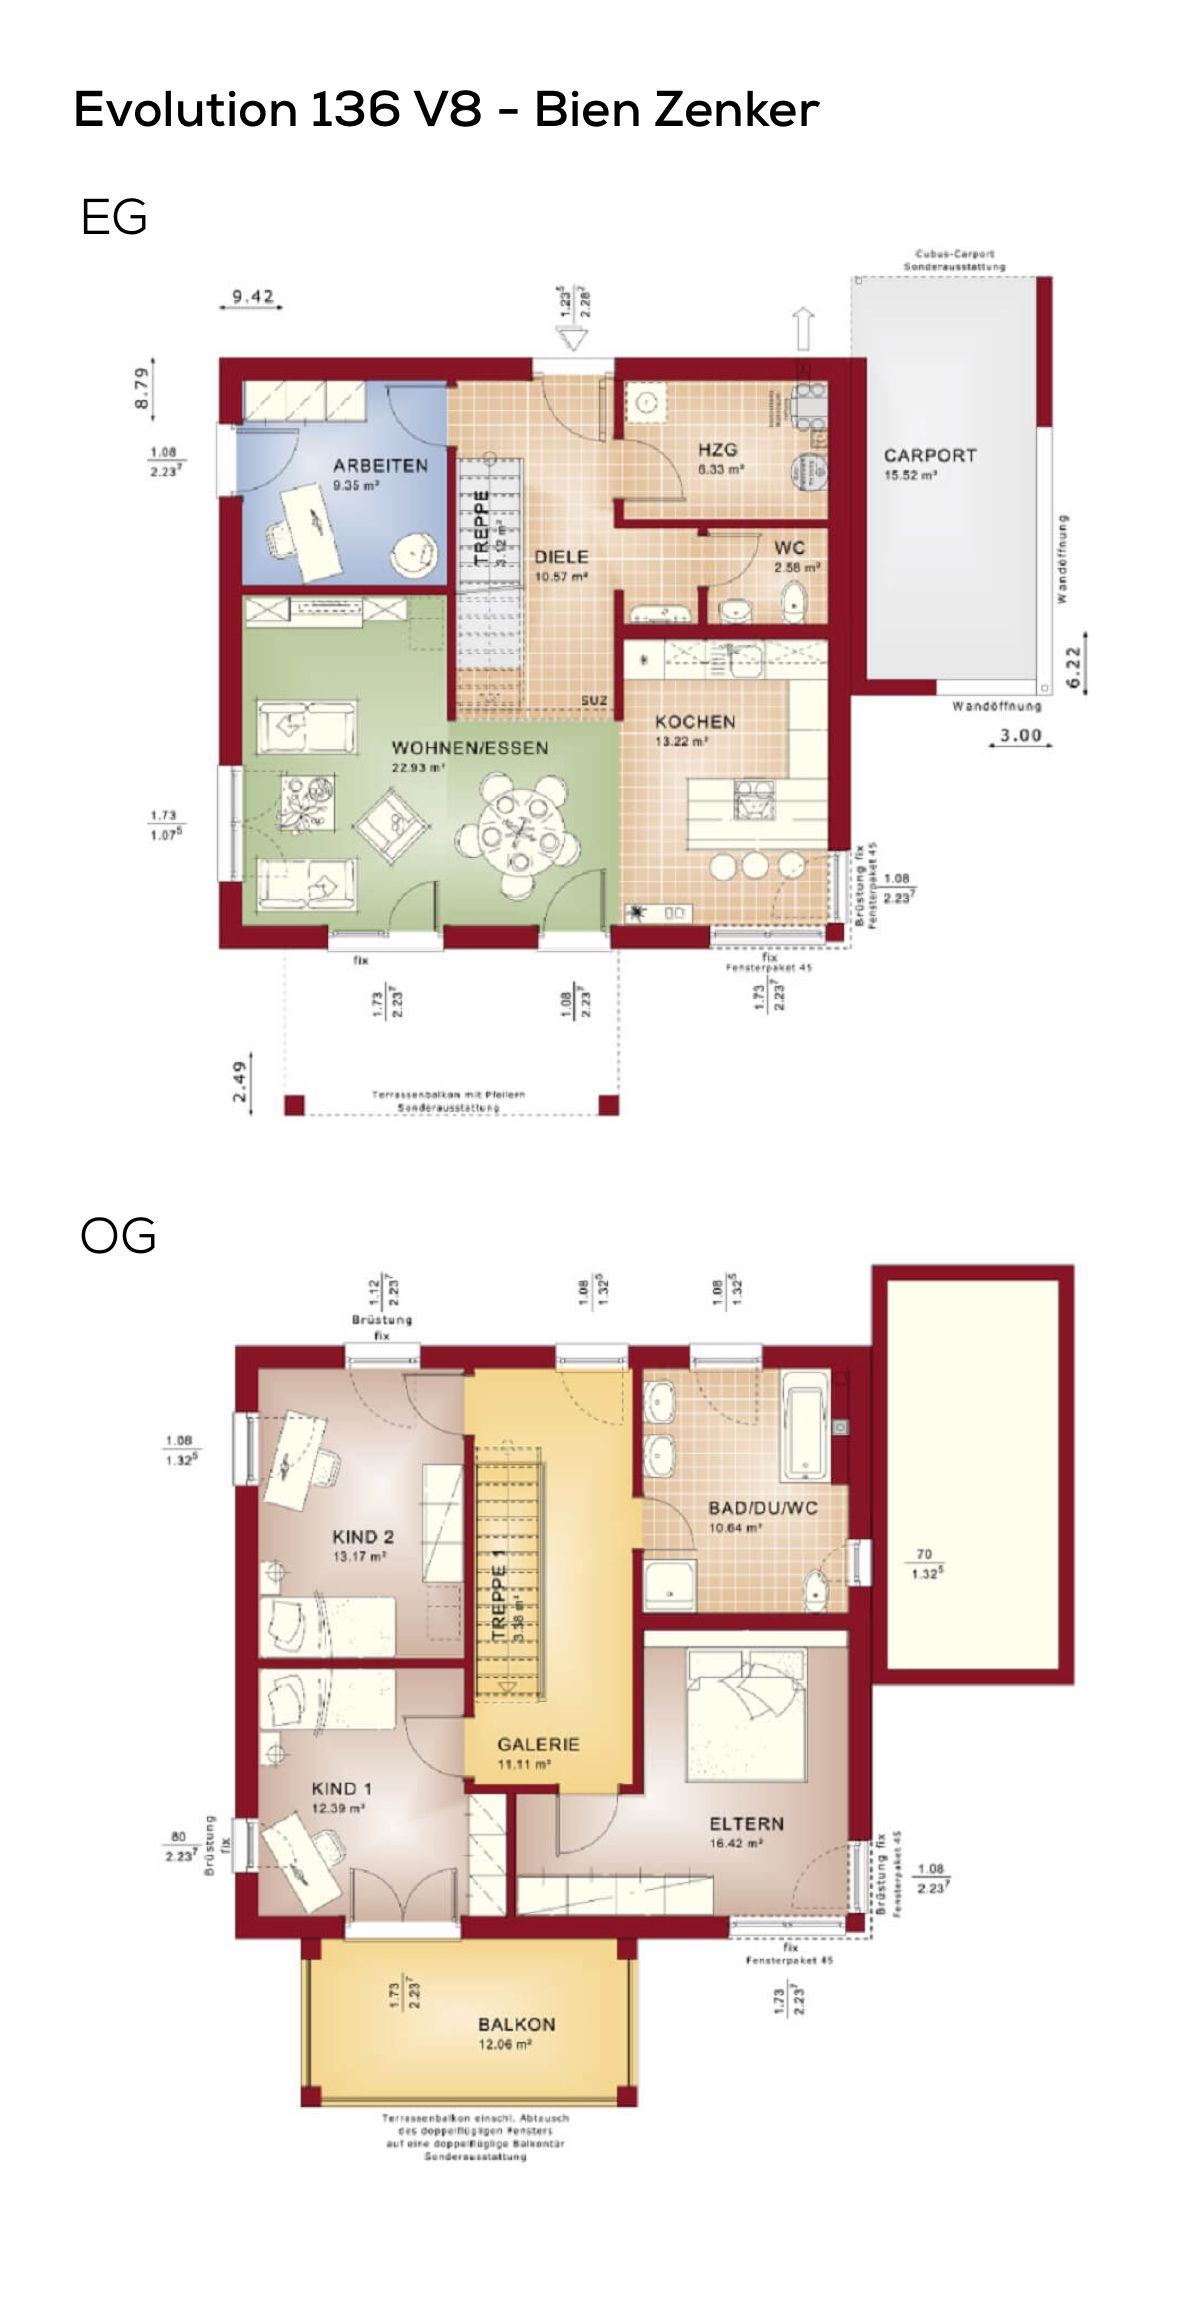 einfamilienhaus grundriss mit carport pultdach architektur 5 zimmer 135 qm wohnfl che ohne. Black Bedroom Furniture Sets. Home Design Ideas